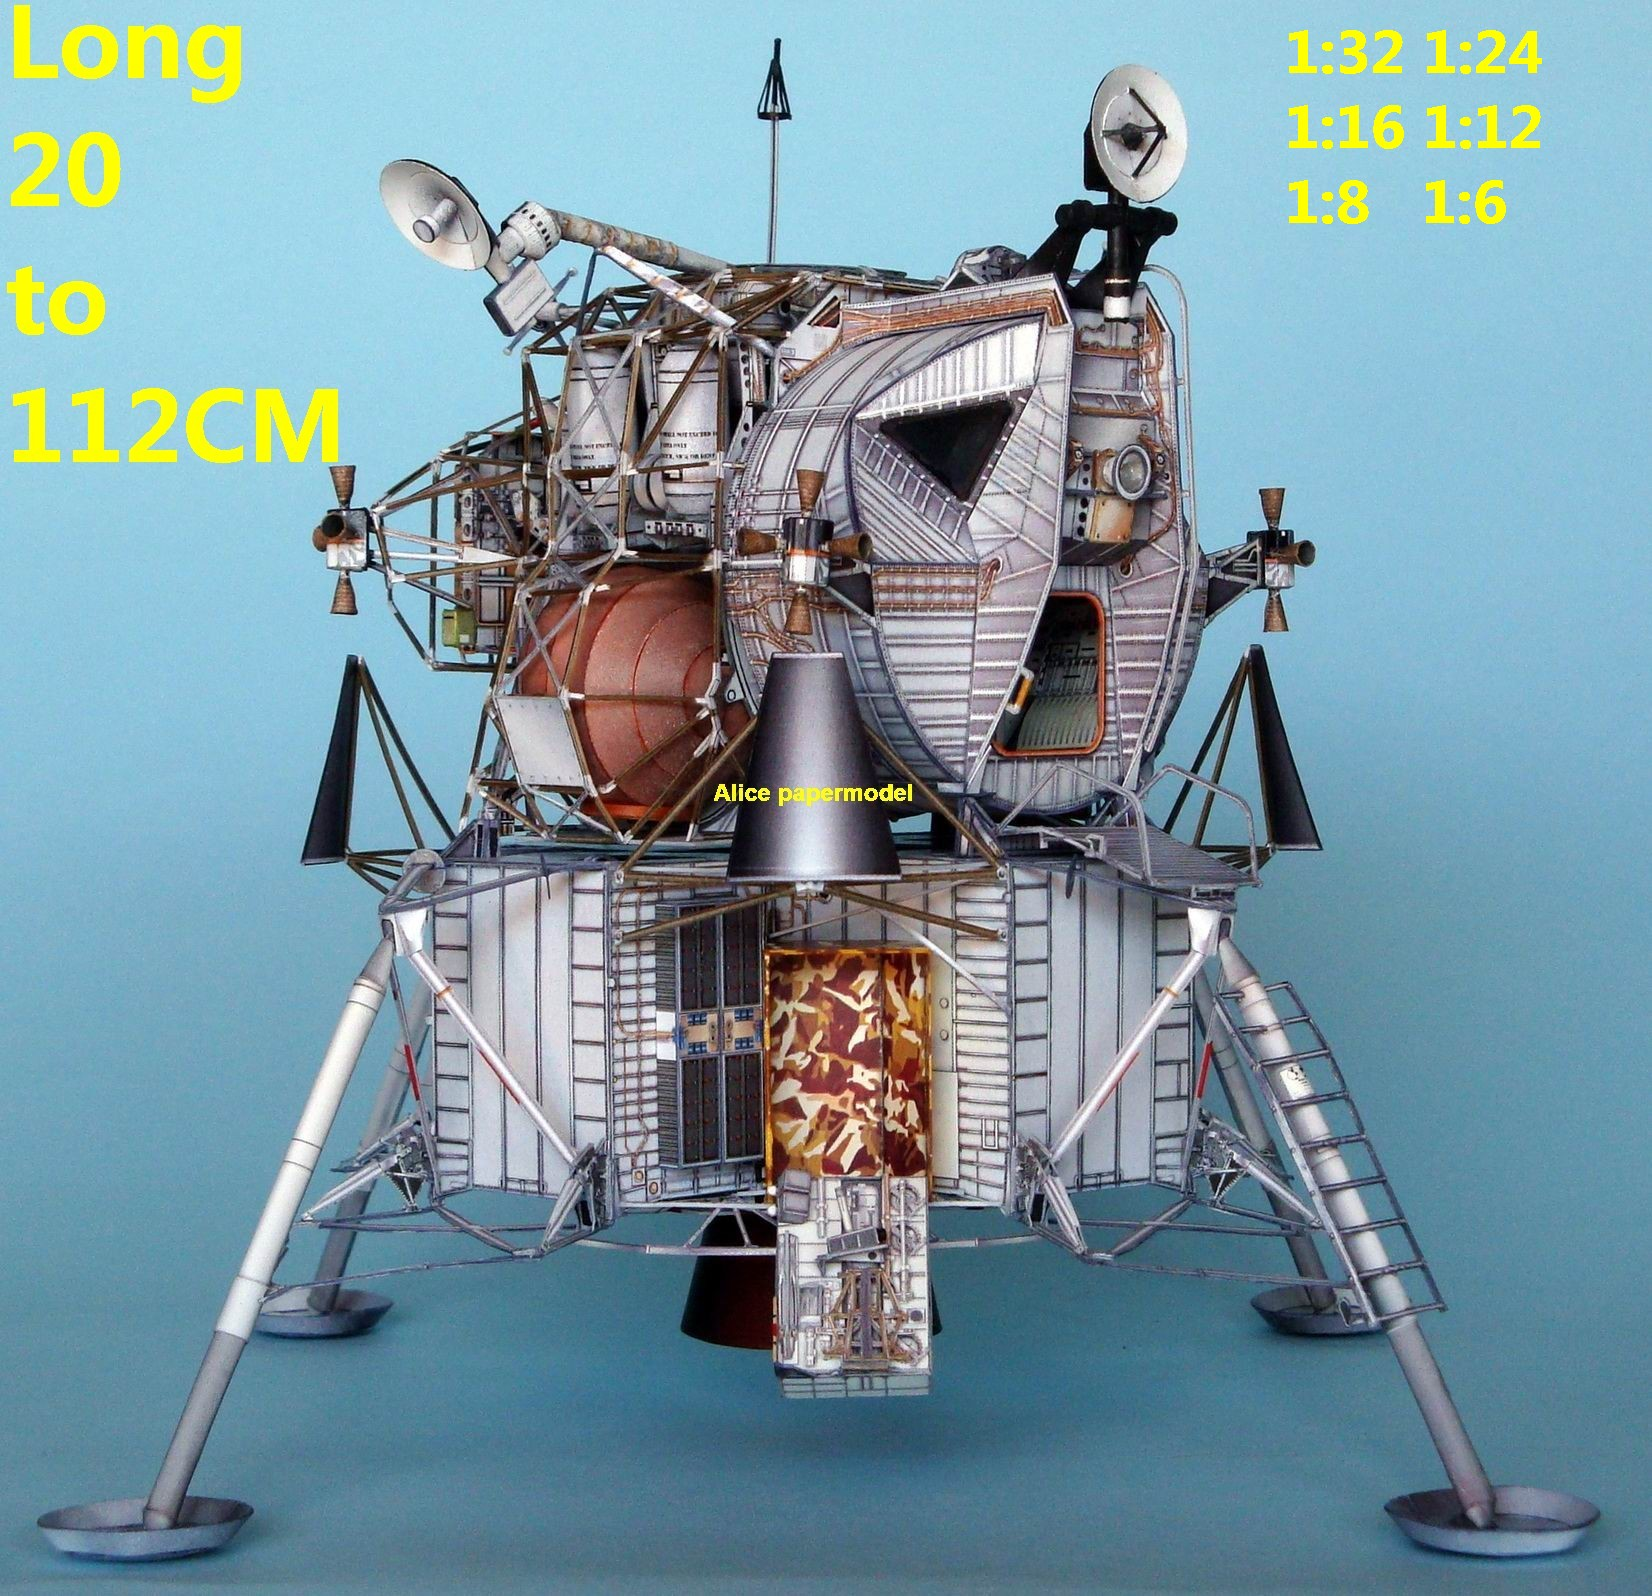 USA NASA Apollo plan LM-7 LM7 Aquarius lunar module astronaut landing Moon LM command CM Satellite spaceship rocket large big scale size model models kit on for sale shop store